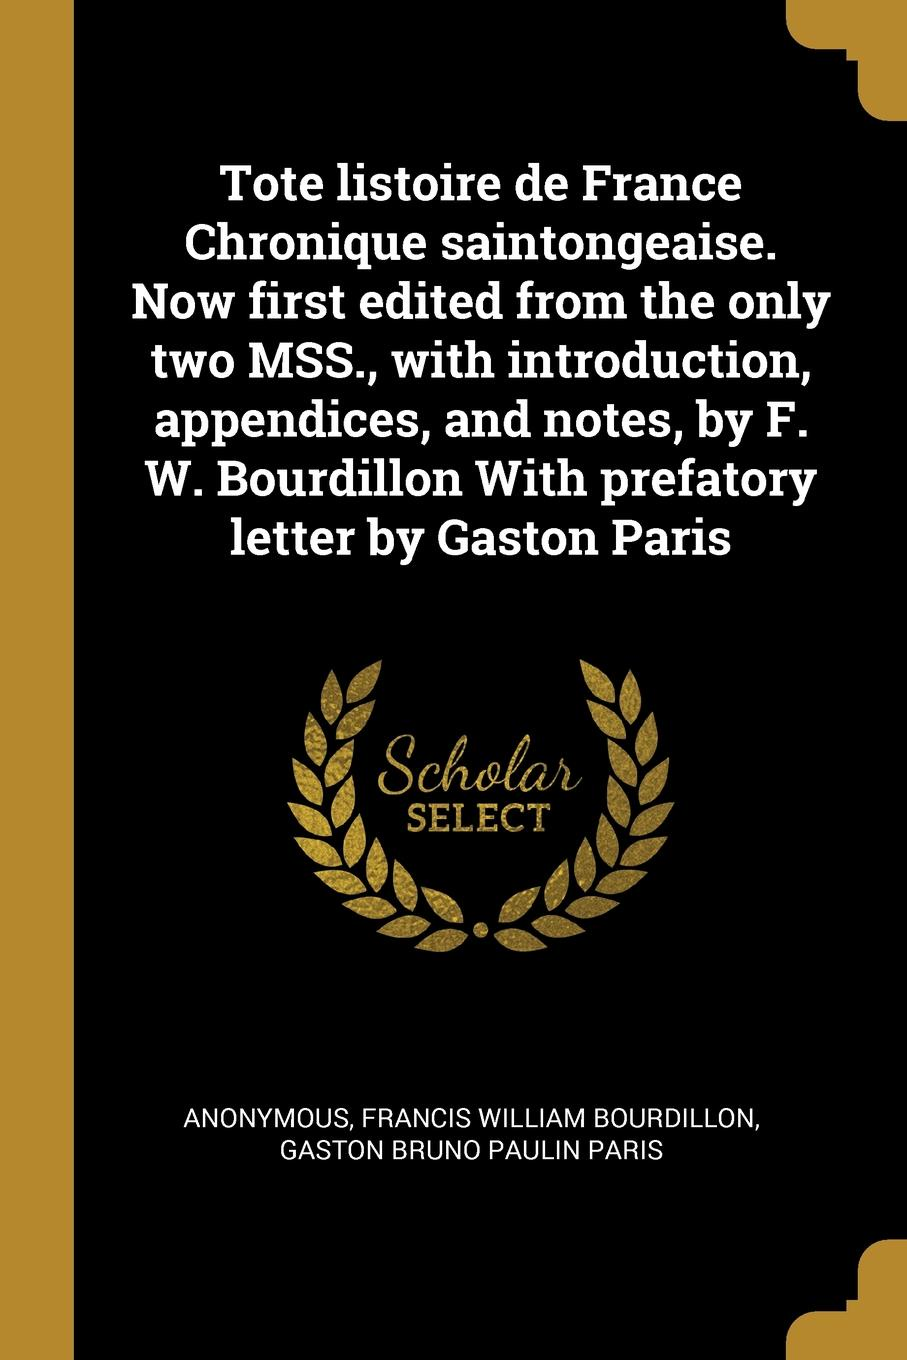 цена M. l'abbé Trochon, Francis William Bourdillon, Gaston Bruno Paulin Paris Tote listoire de France Chronique saintongeaise. Now first edited from the only two MSS., with introduction, appendices, and notes, by F. W. Bourdillon With prefatory letter by Gaston Paris онлайн в 2017 году